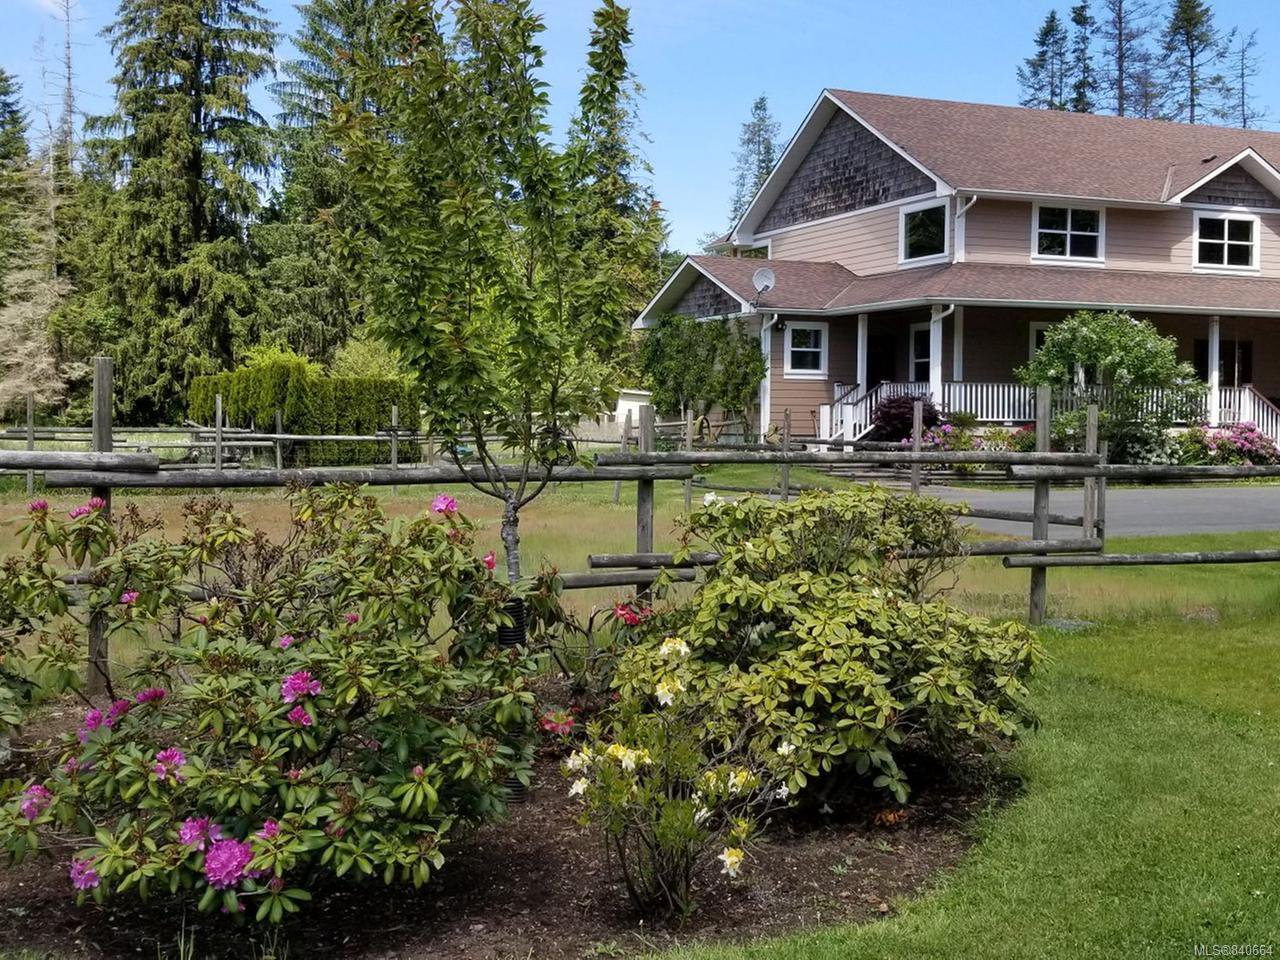 Main Photo: 3120 Dove Creek Rd in COURTENAY: CV Courtenay West Single Family Detached for sale (Comox Valley)  : MLS®# 840664